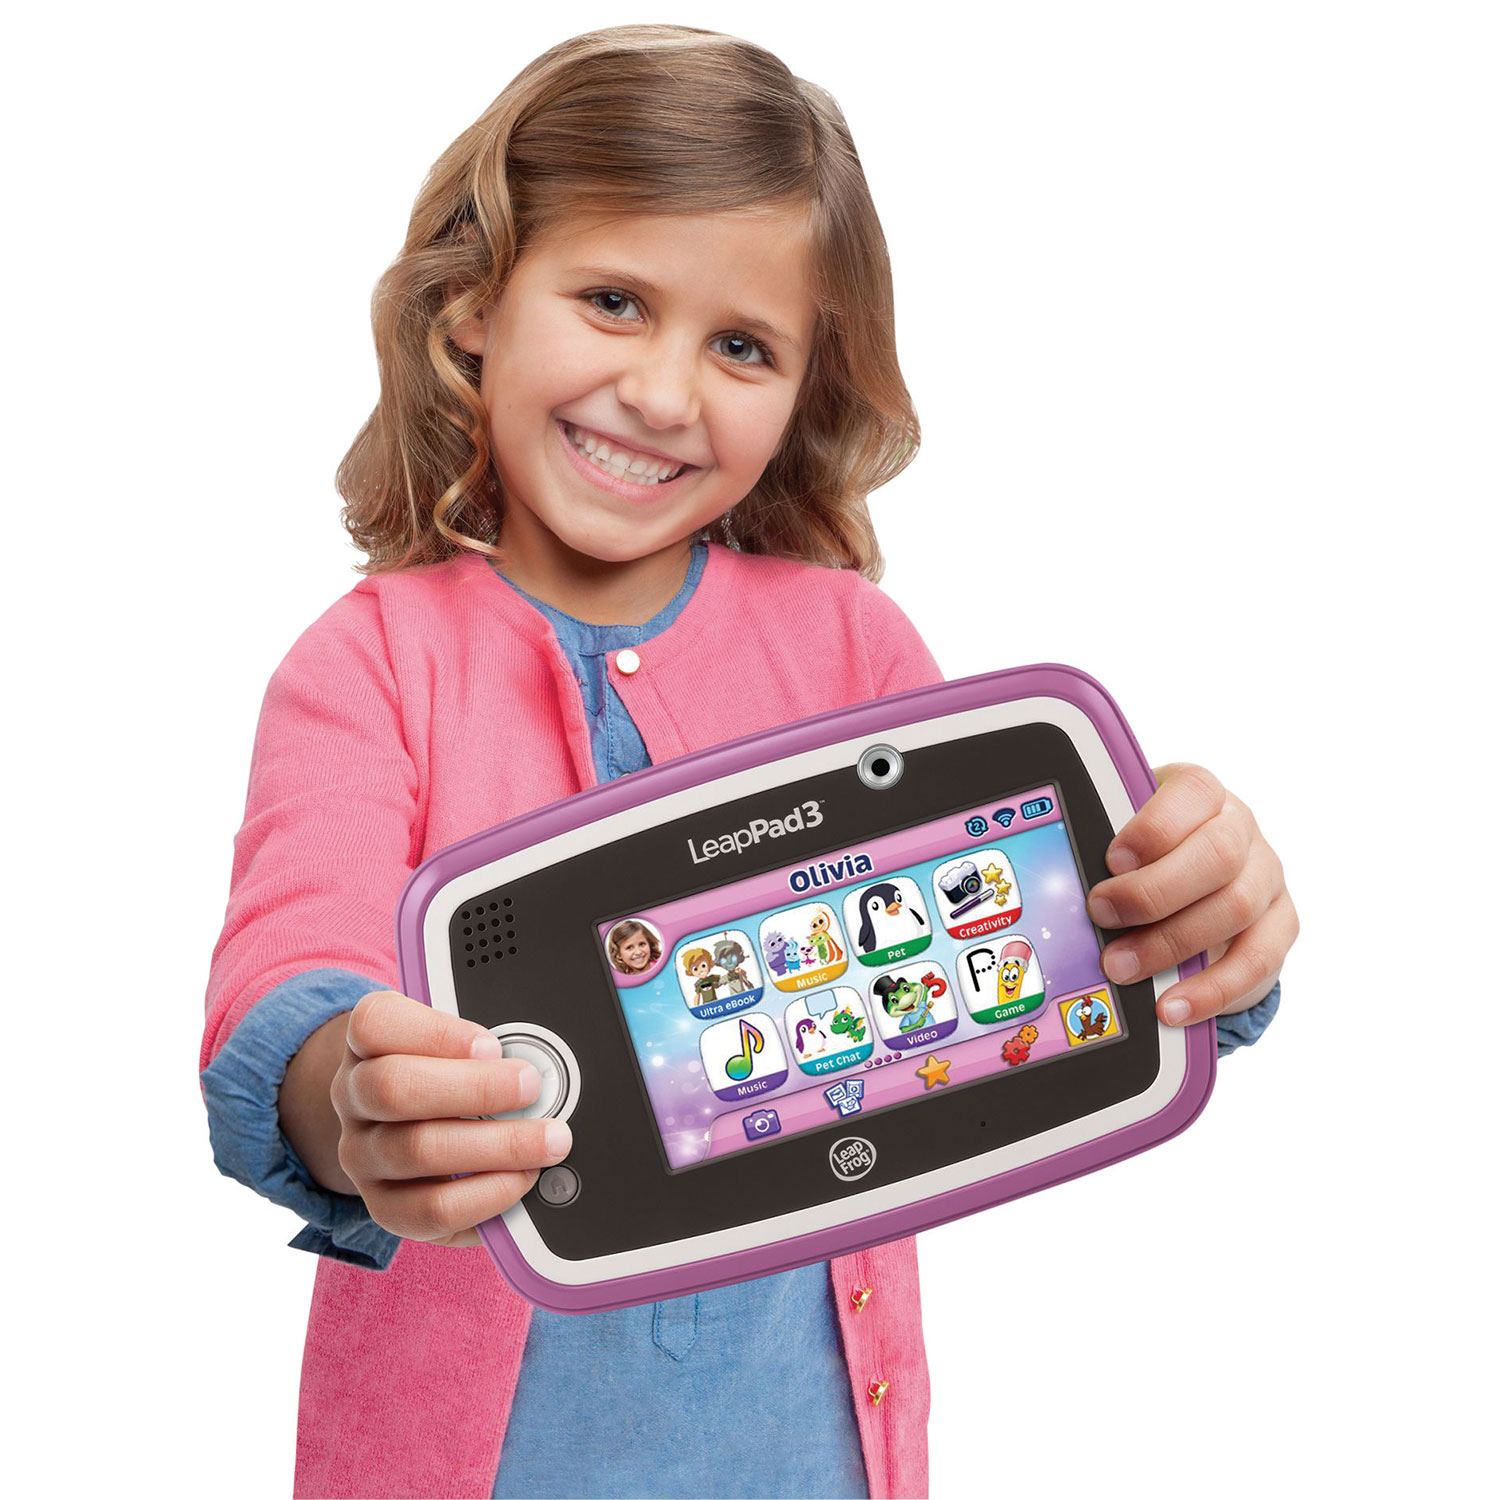 Tablette d'apprentissage LeapPad3 de LeapFrog - Rose